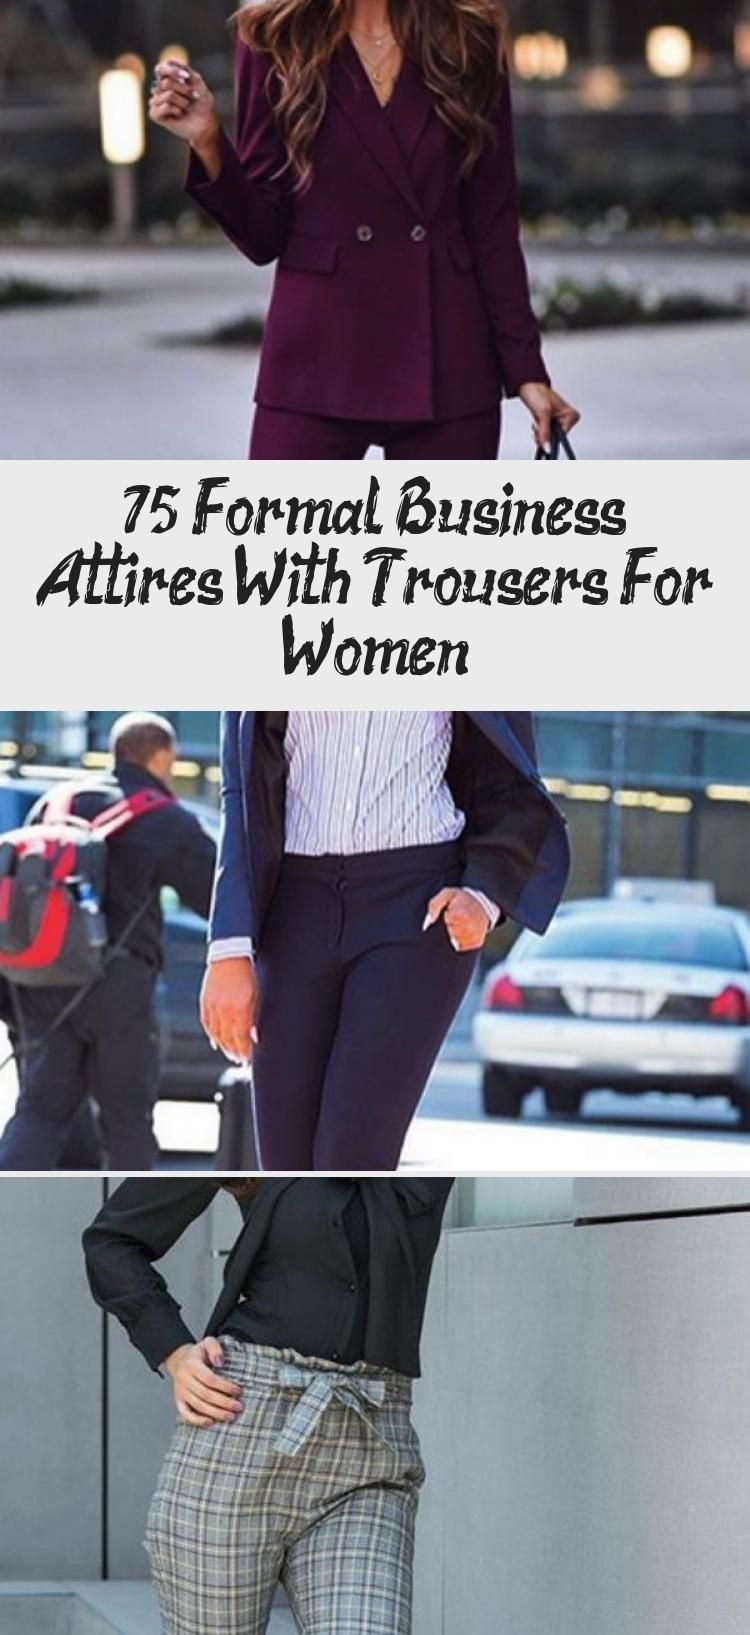 75 Formal Business Attires With Trousers For Women - Fashion #businessattirefory...